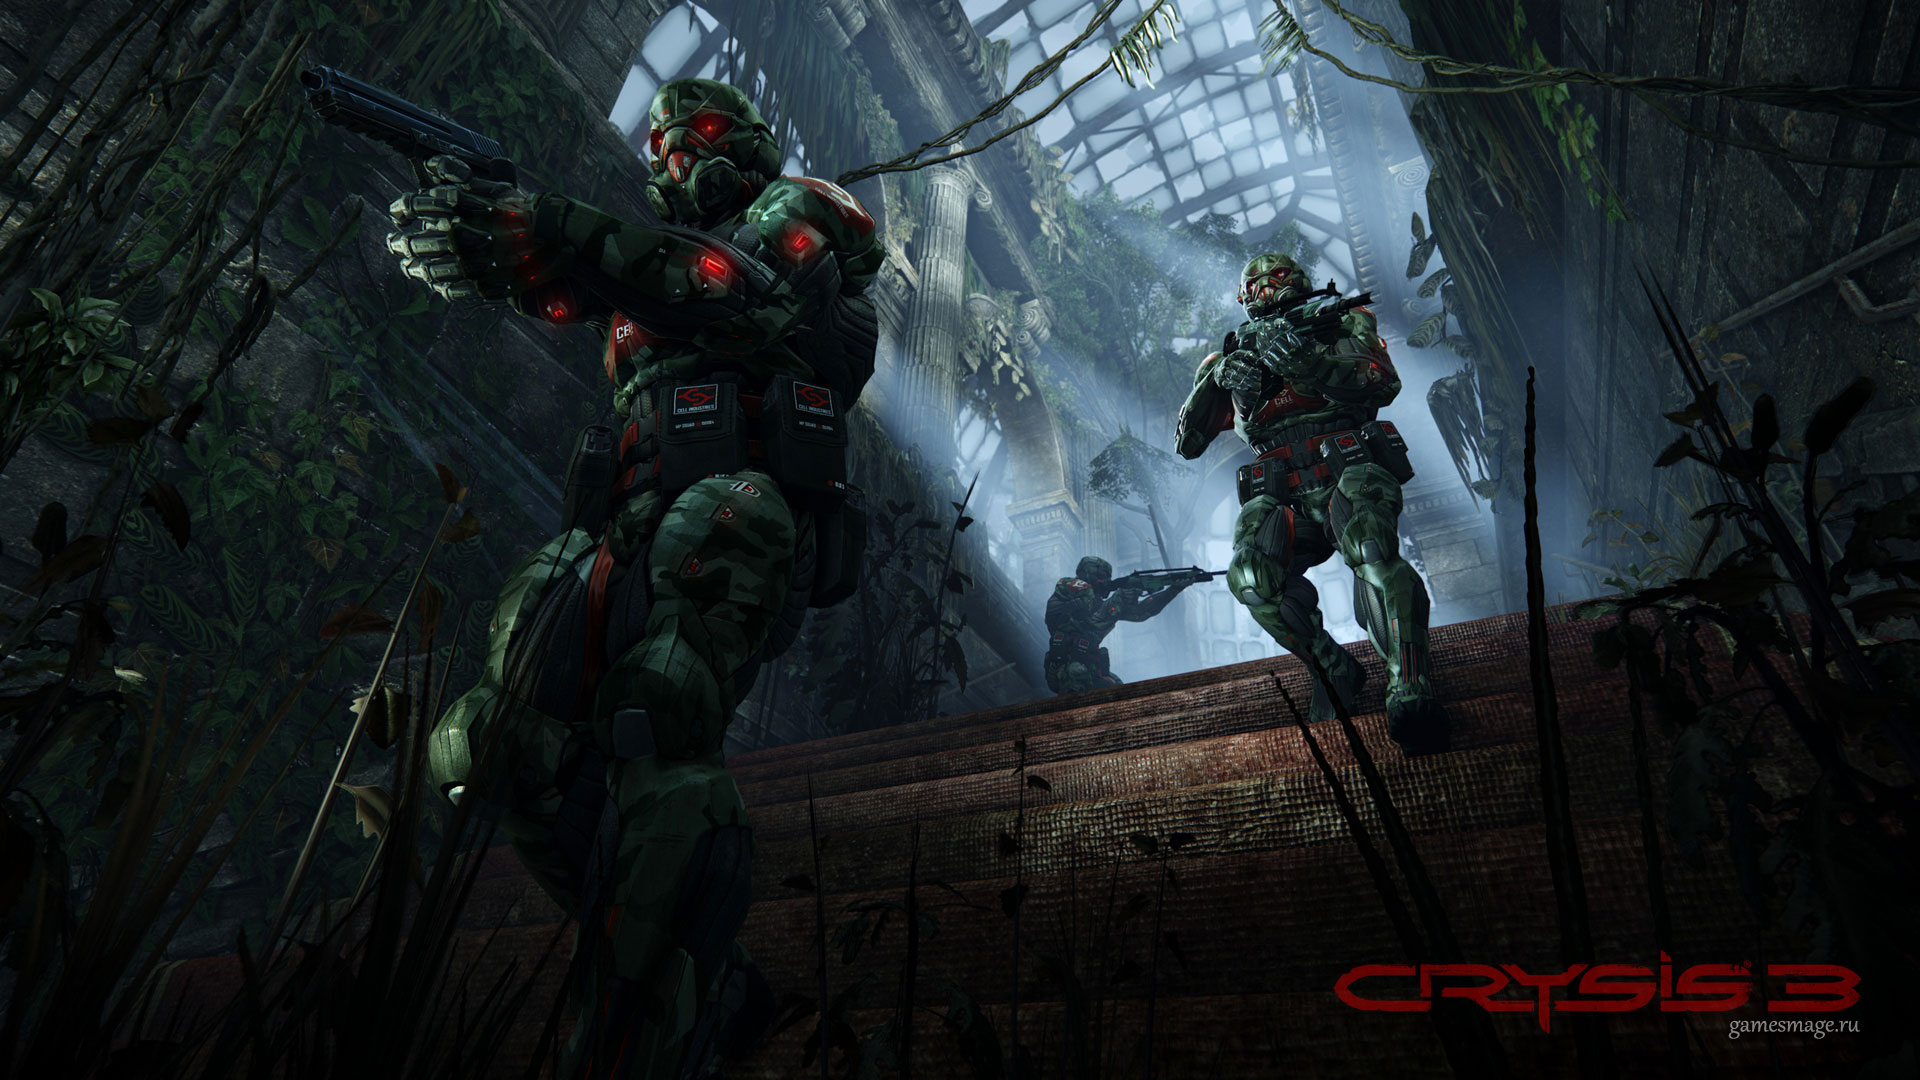 Crysis 3 - Screenshot 2/15